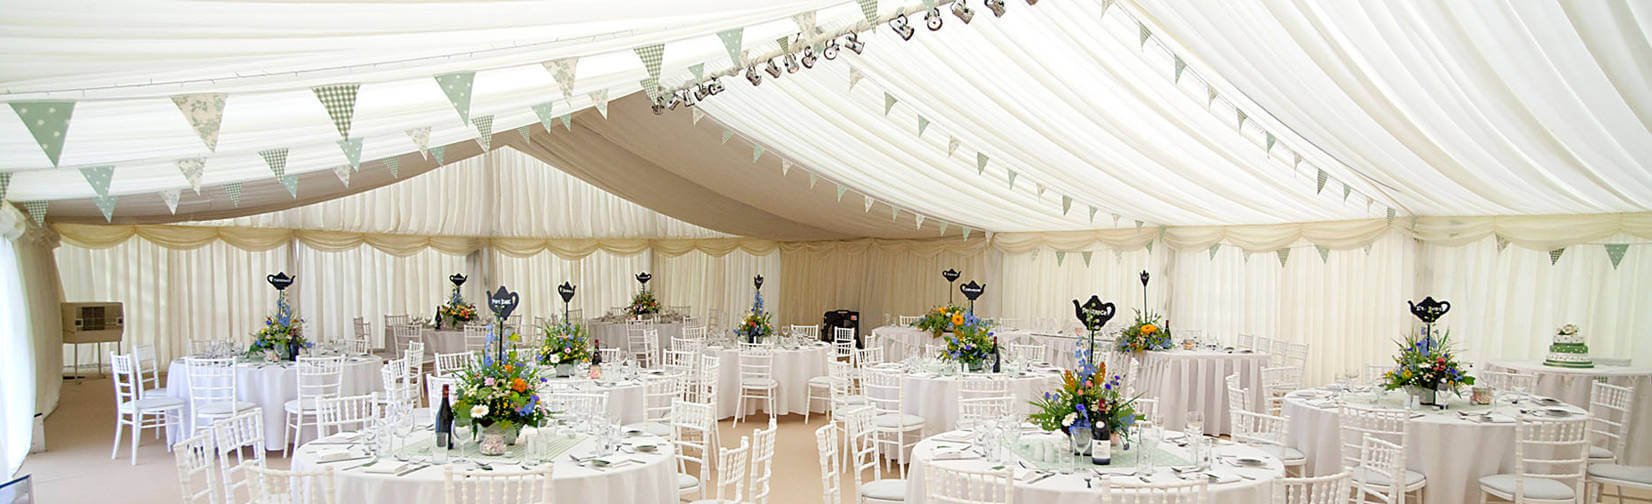 Providing Marquees, Furniture, Flooring, Gourmet Food, DJs and Wedding Entertainment